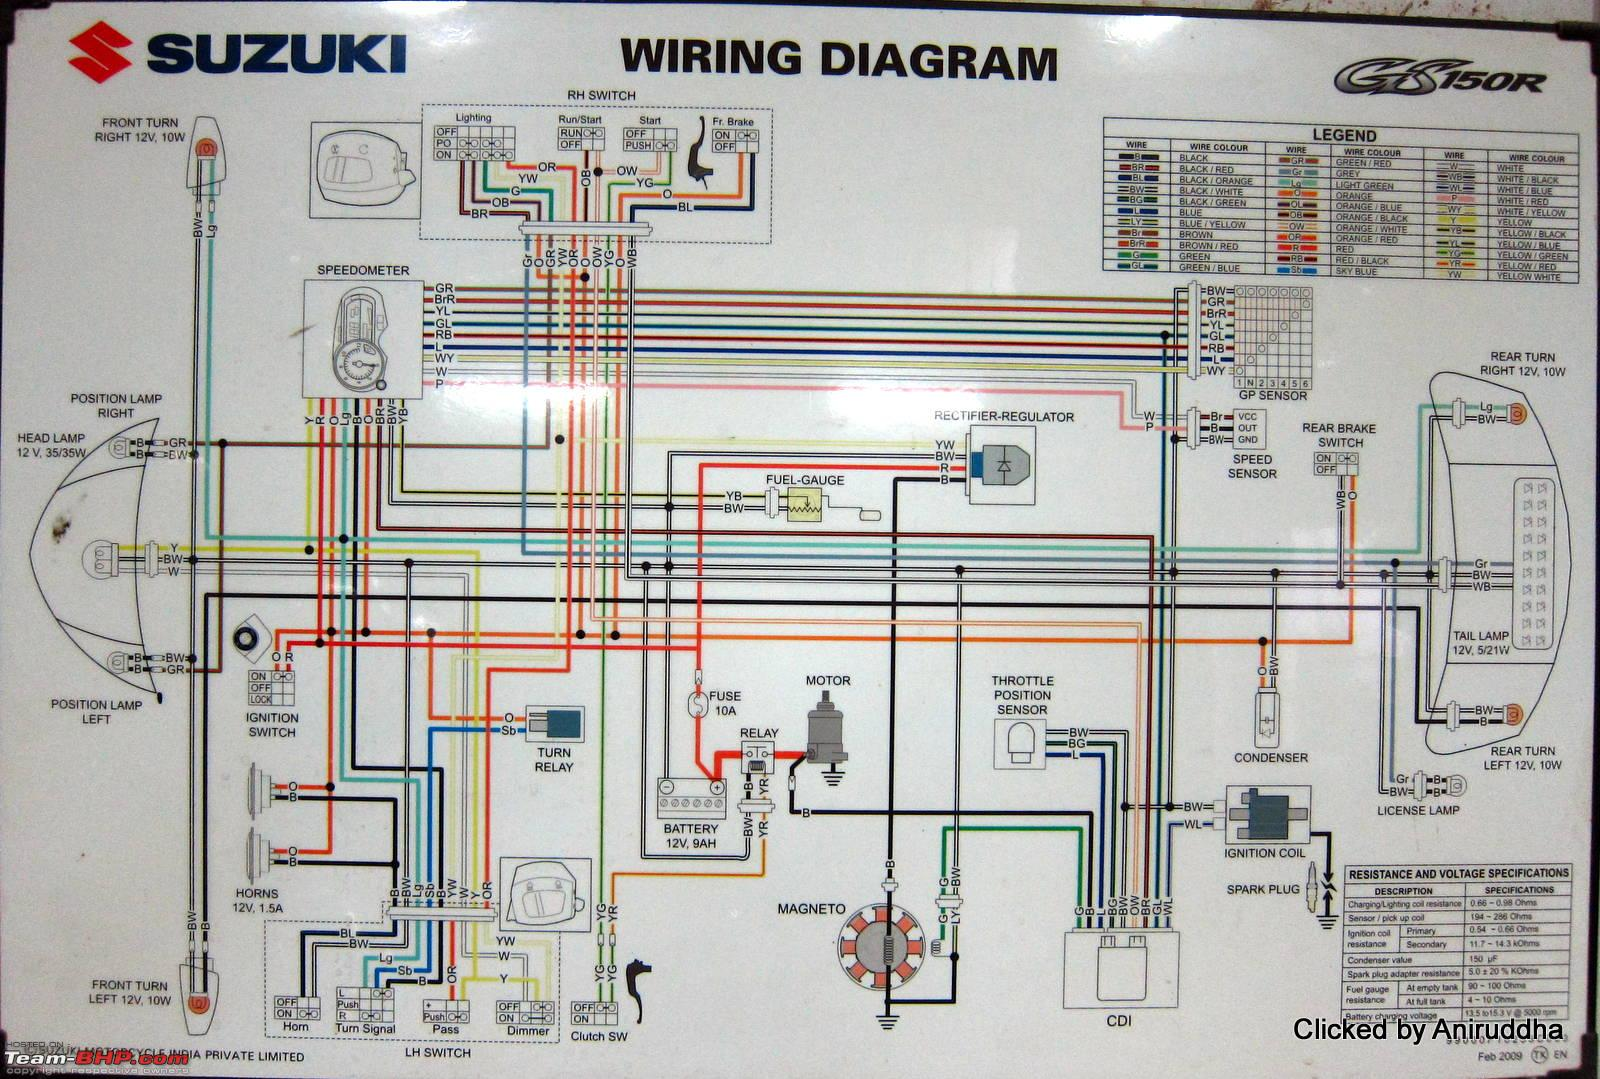 Honda Bike Wiring Diagram Free Vehicle Diagrams Mini Moto Images Gallery